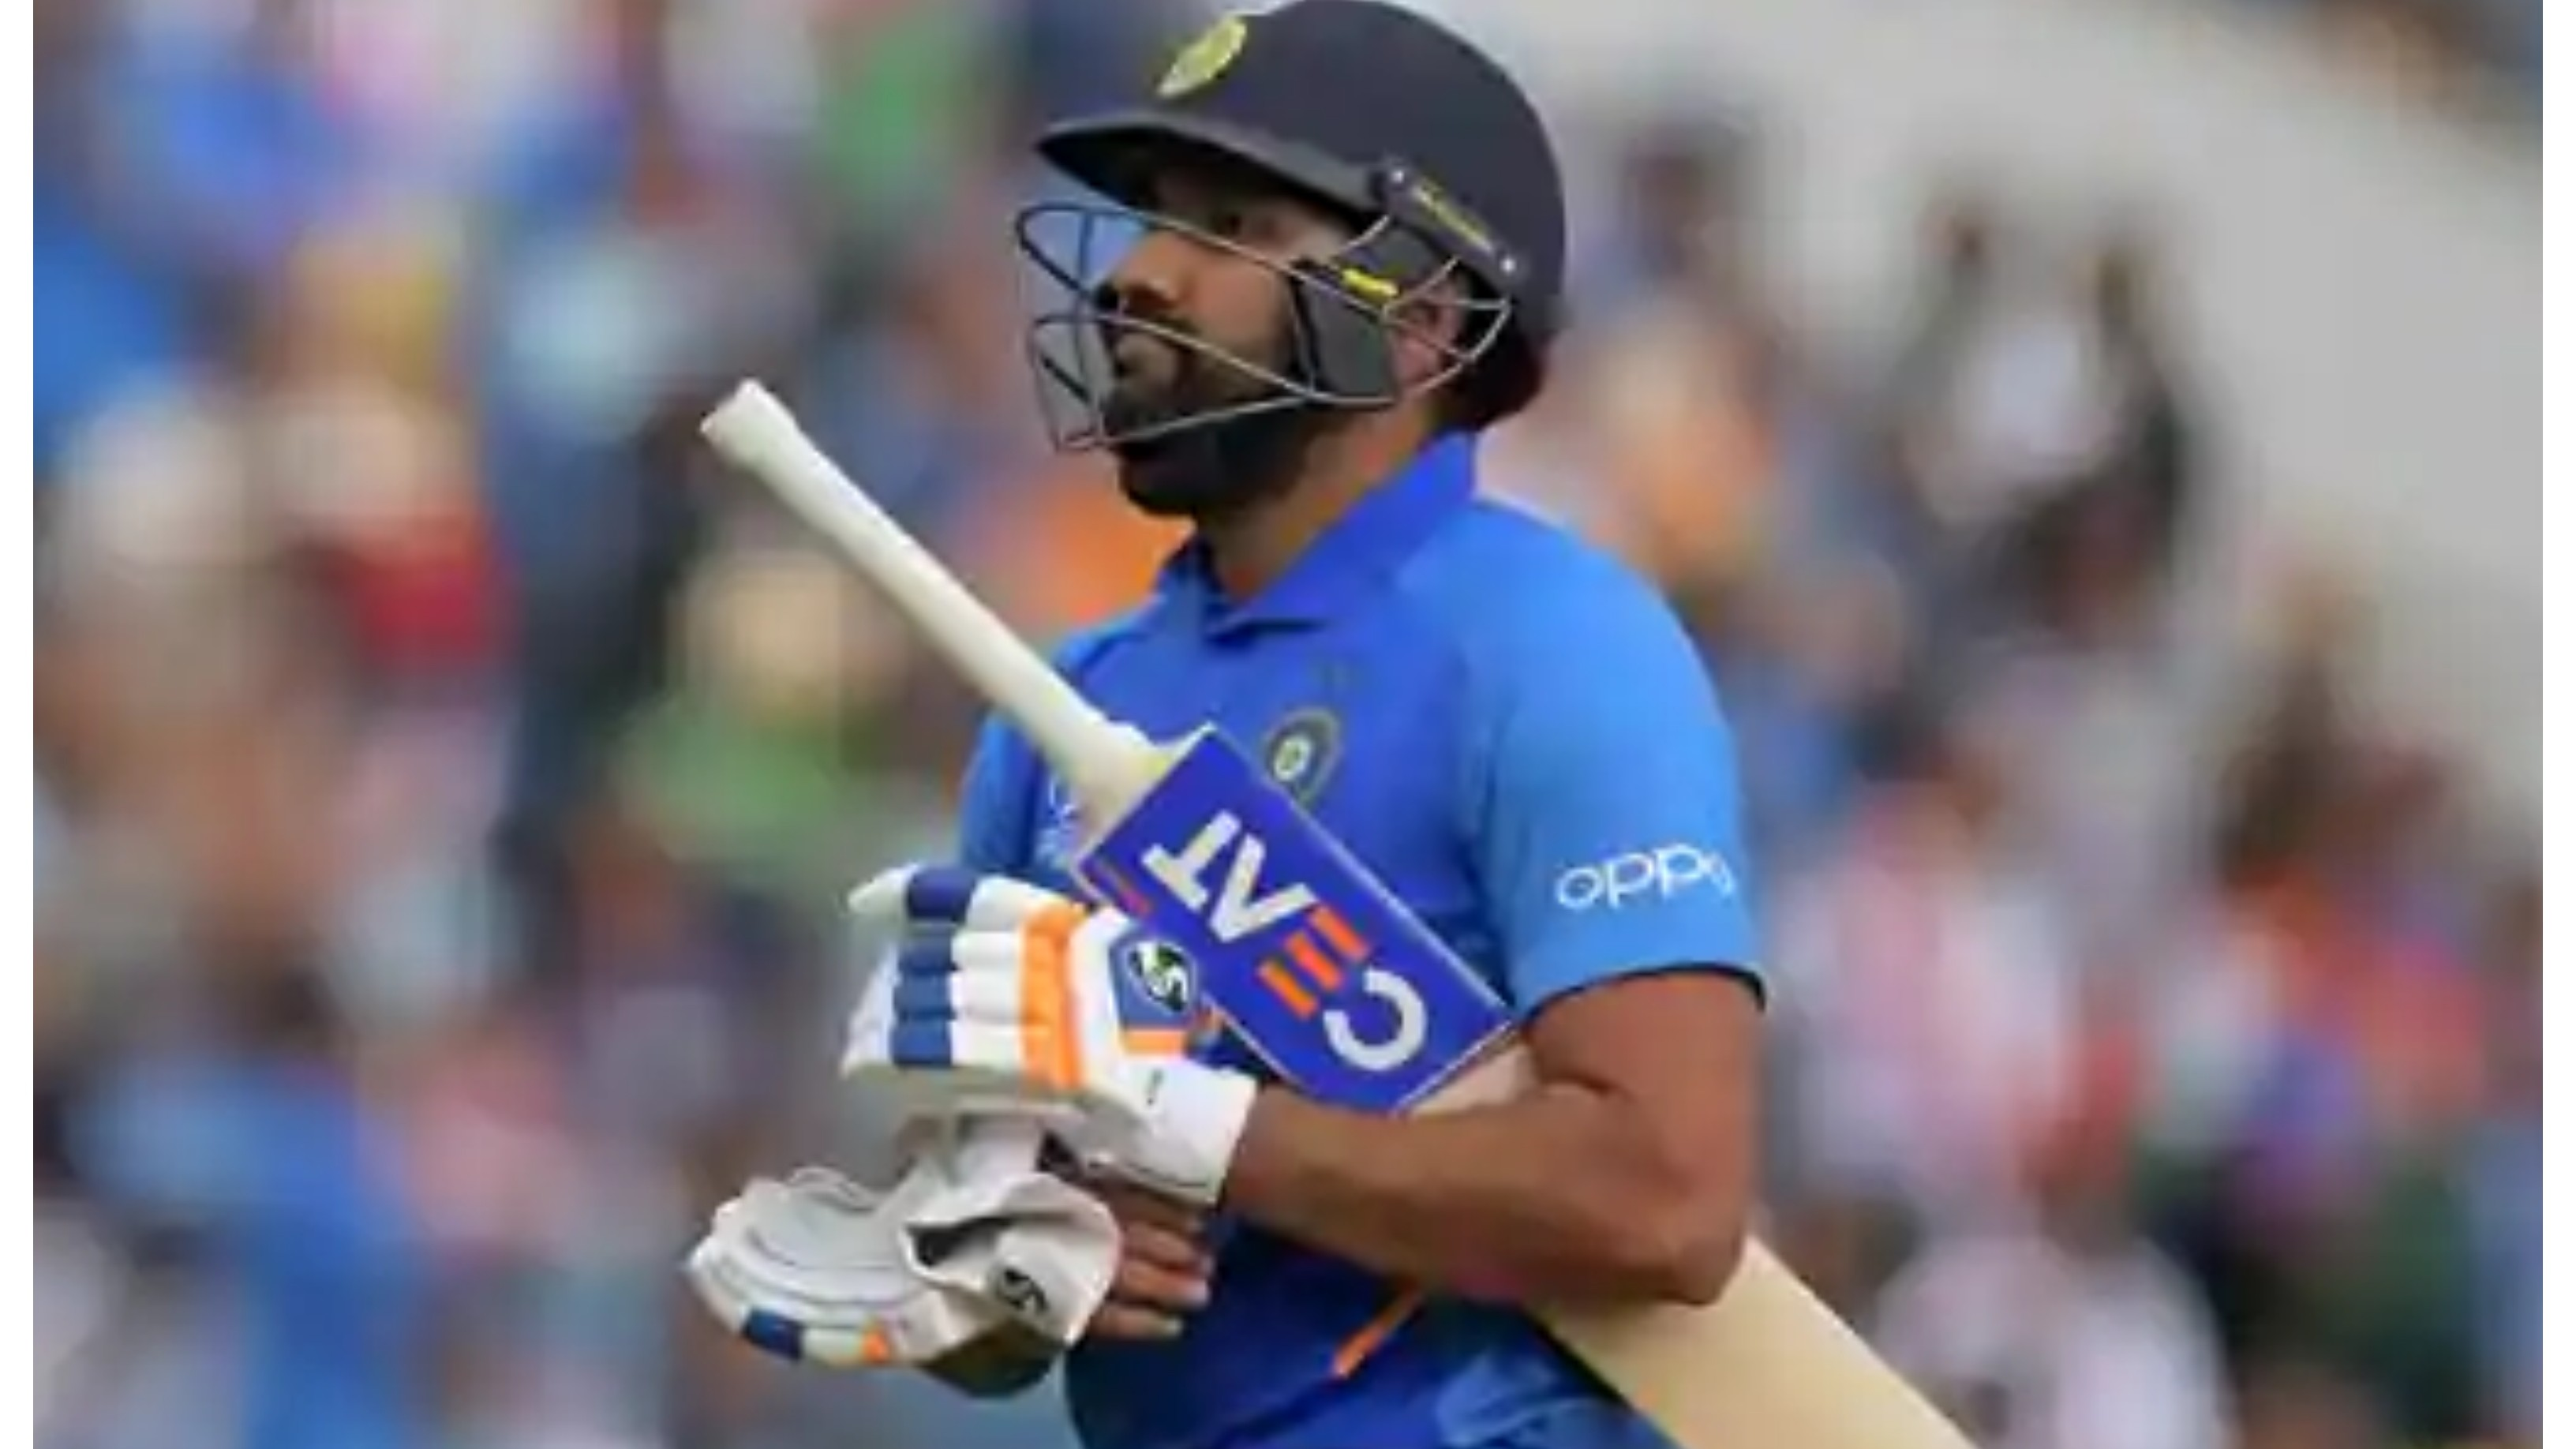 'Wish we could go little further' – Rohit Sharma still in pain over India's World Cup 2019 semi-final loss